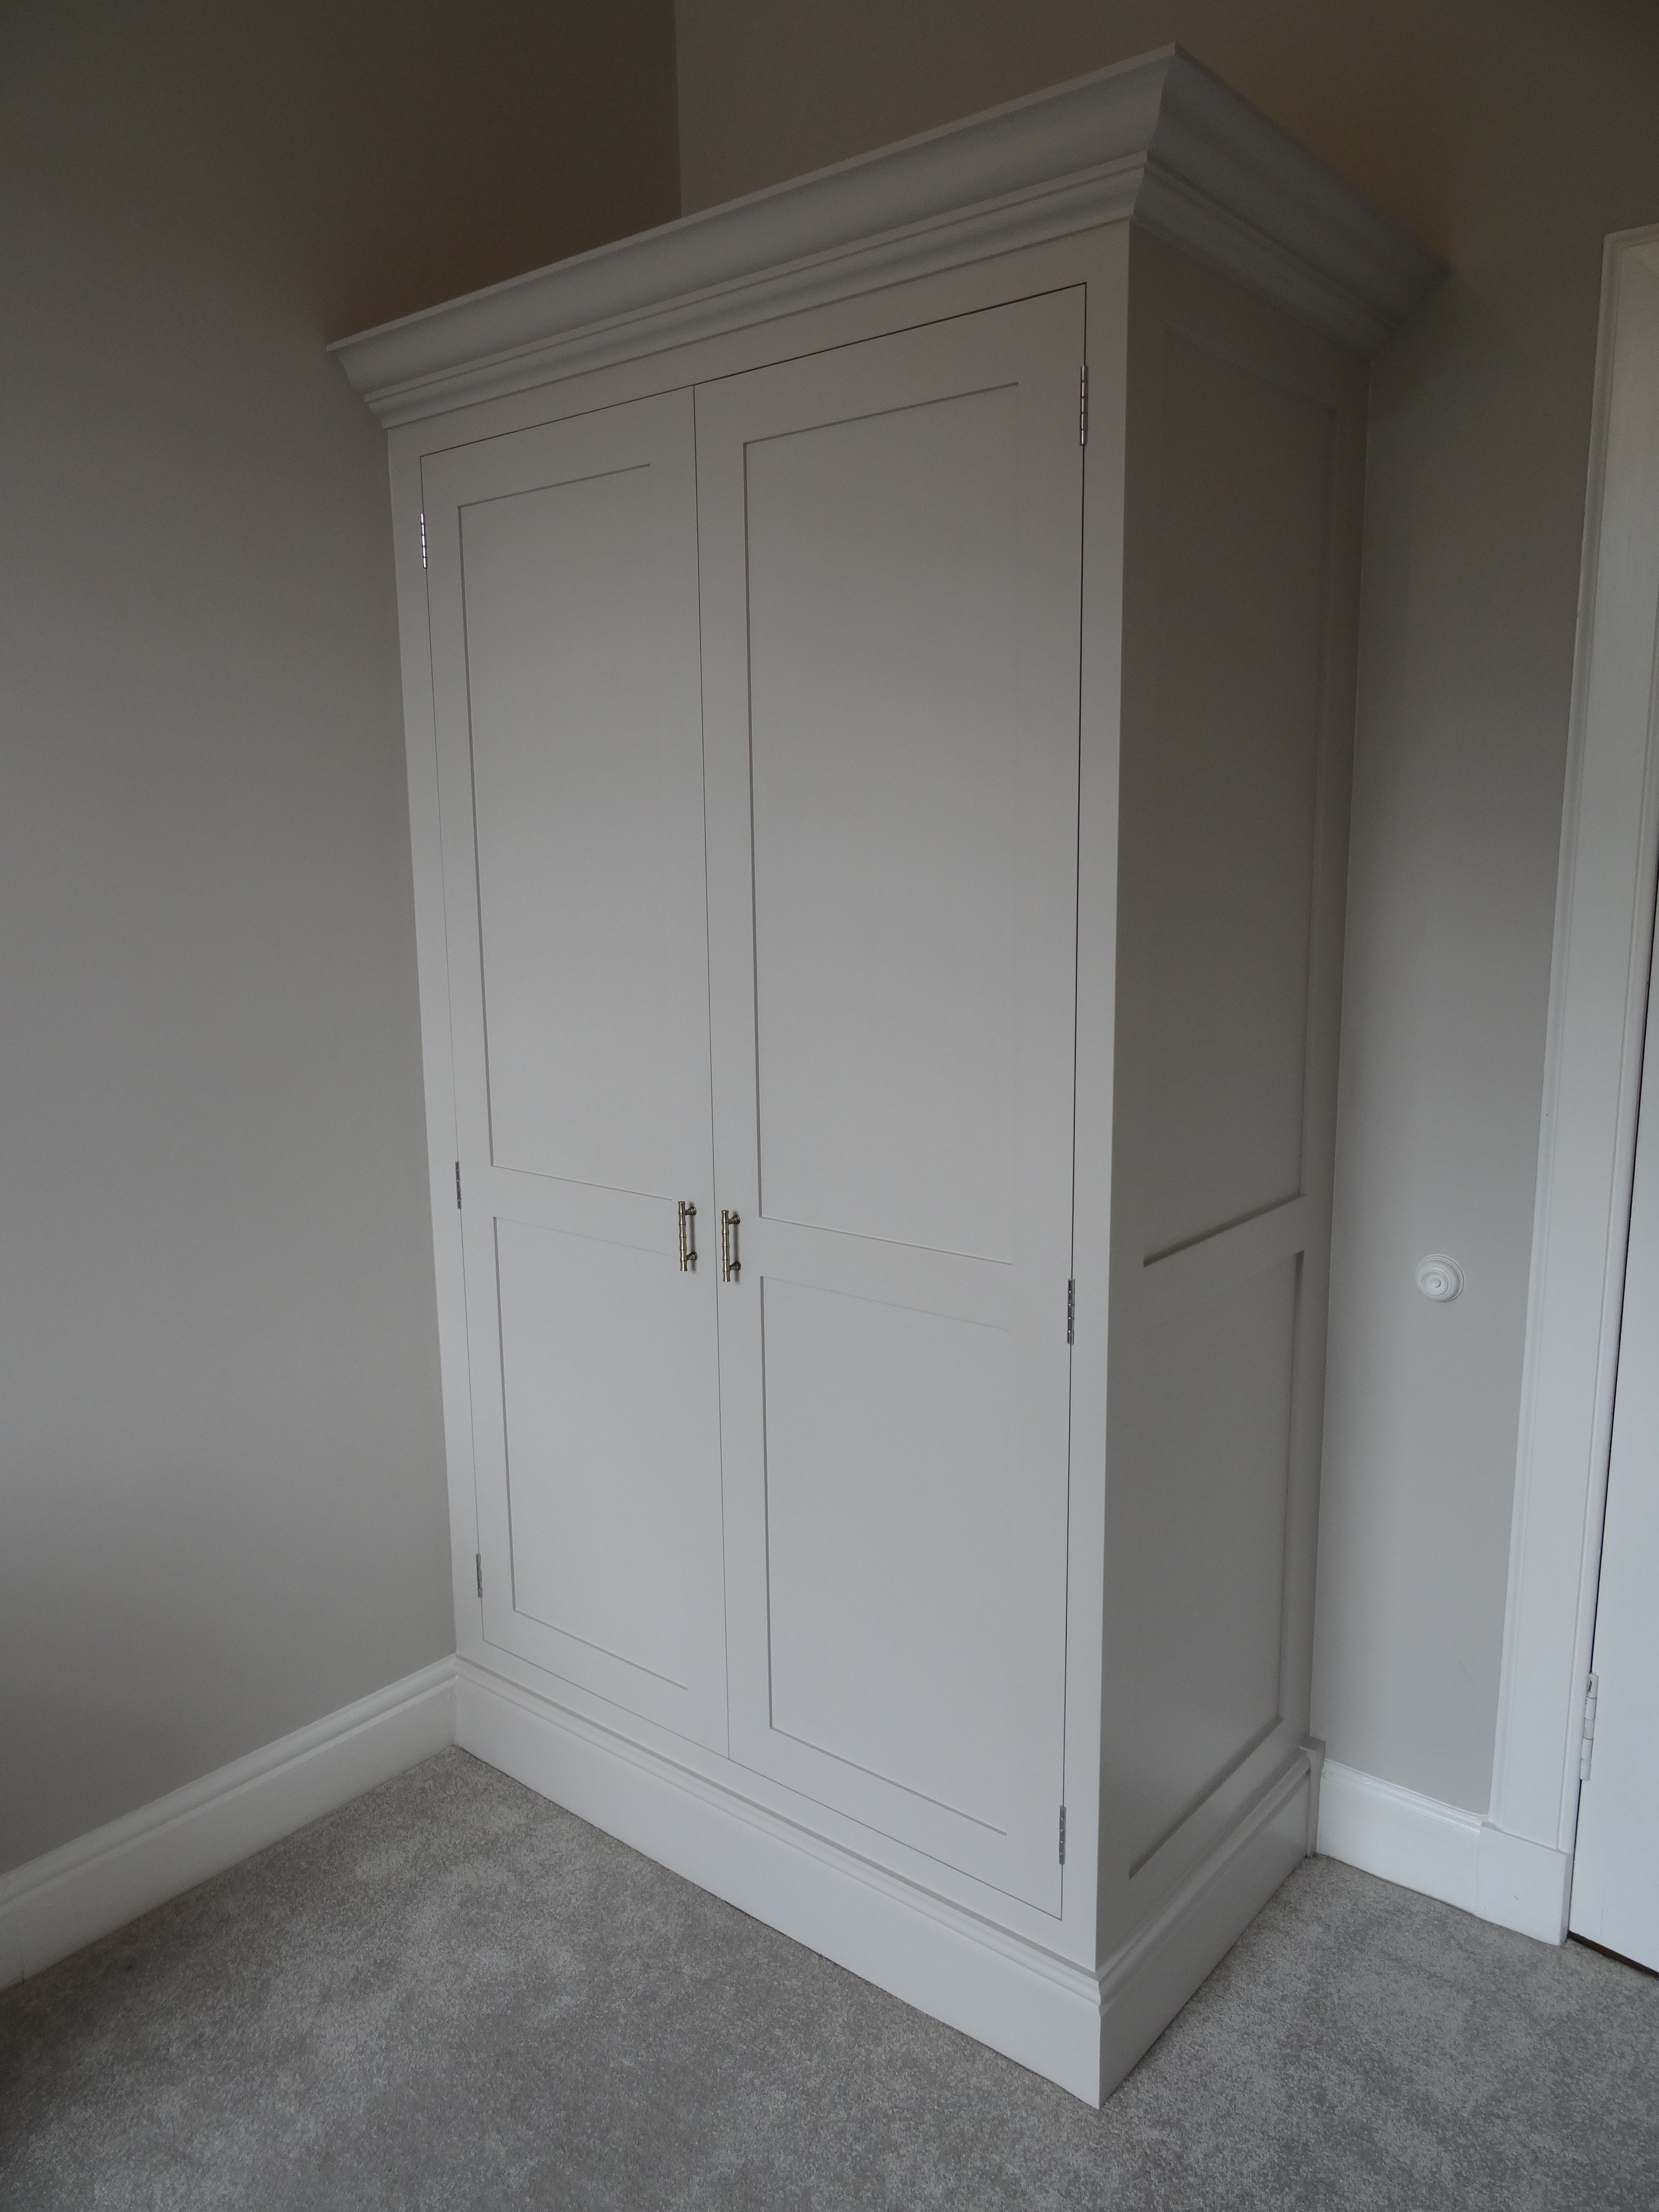 Shop For Cheap Contemporary Oak Triple Wardrobe With Drawers Shaker Style Richmond Range Exquisite Craftsmanship;